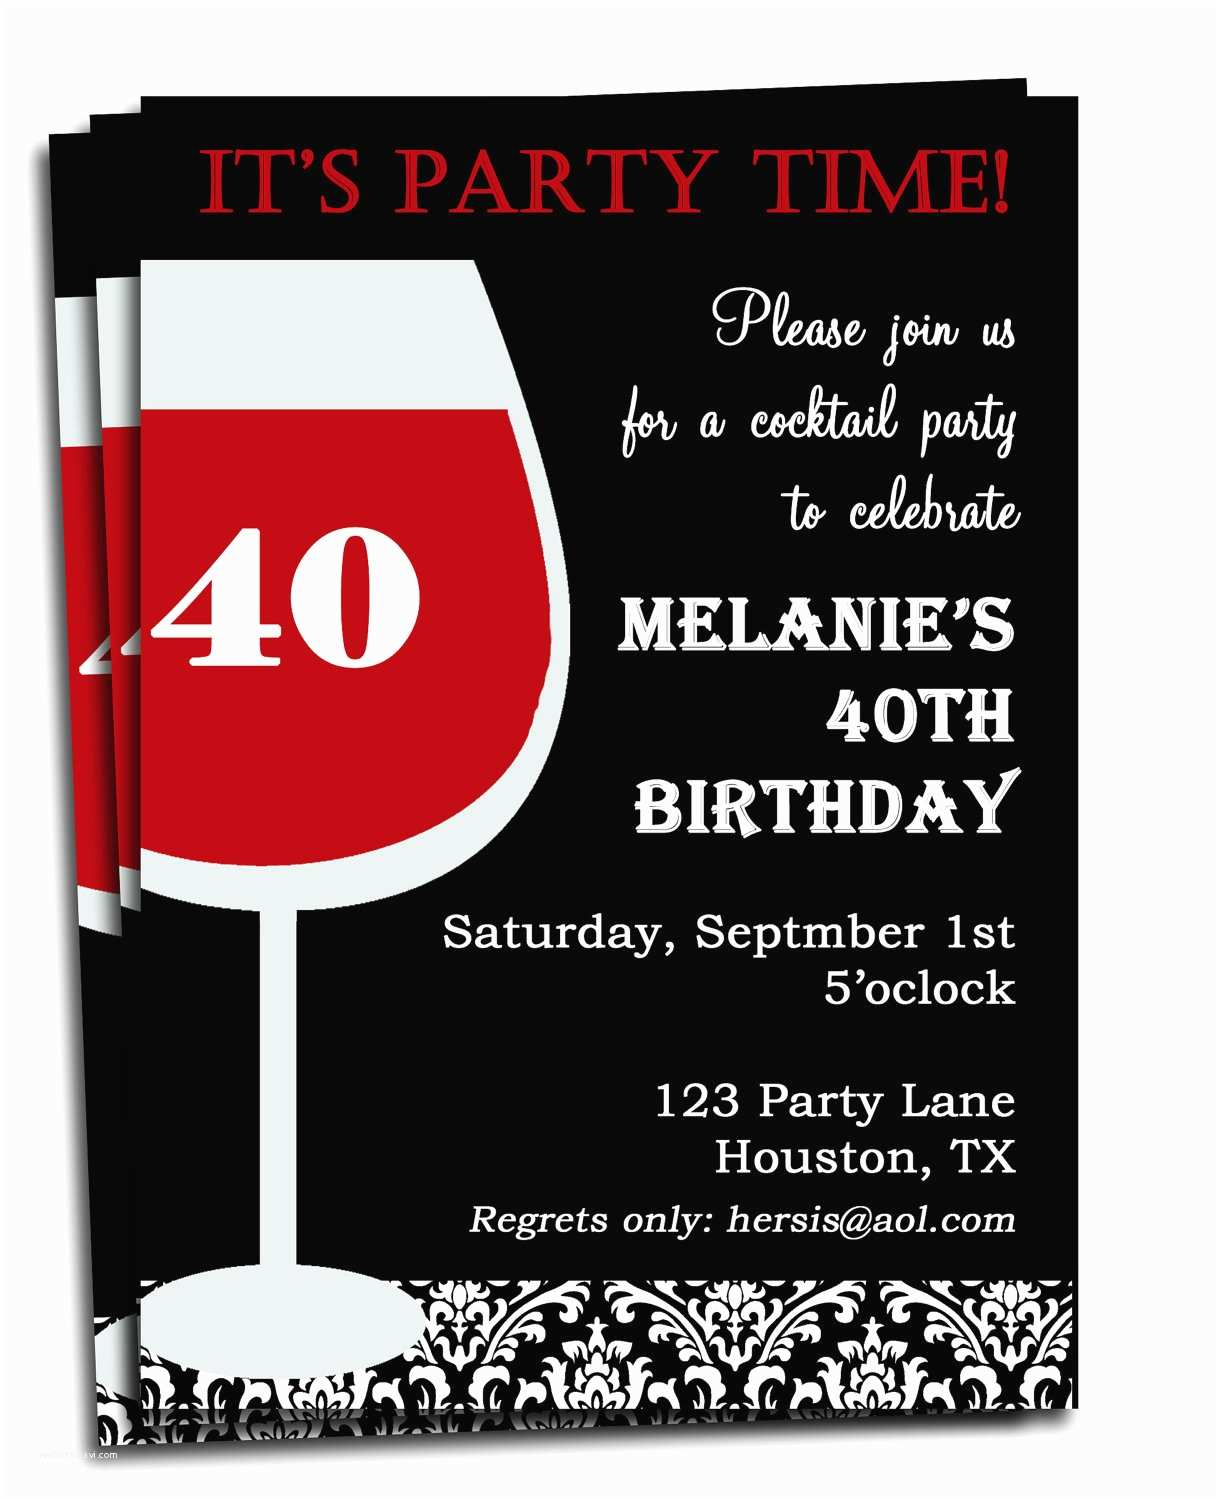 Personalized Birthday Invitations Adult Birthday Invitation Printable Personalized for Your